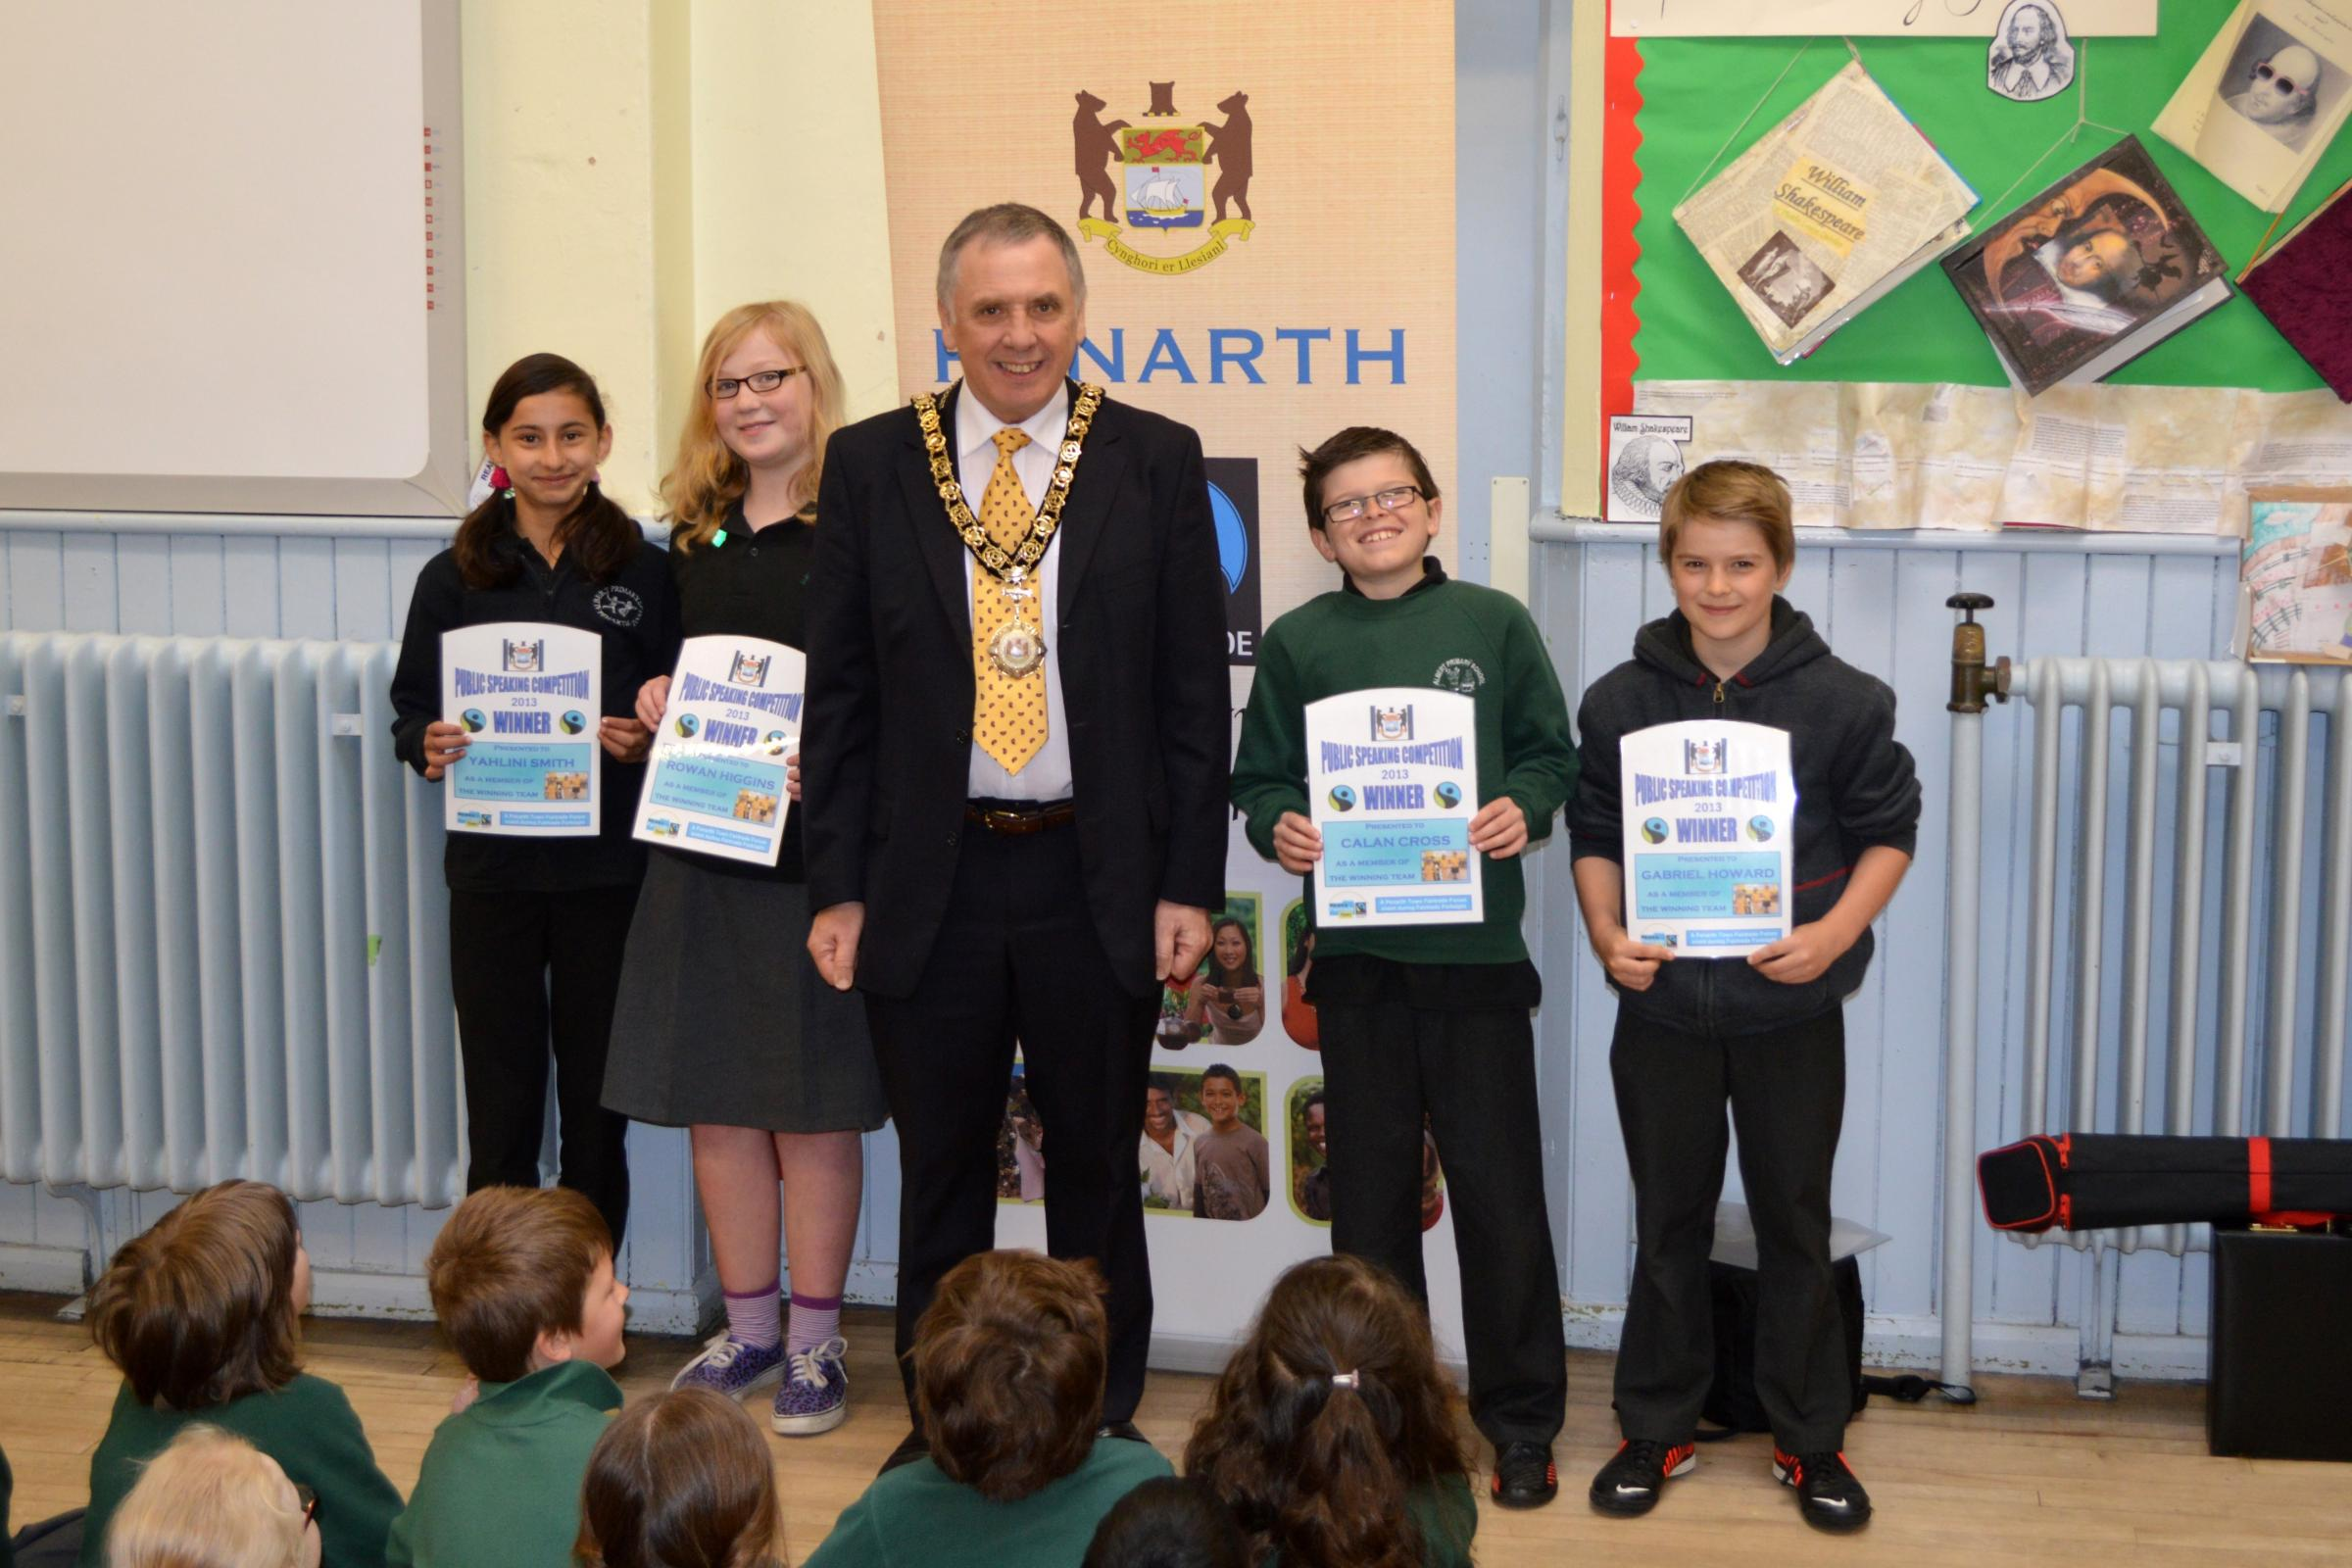 FAIRTRADE: Cllr Phil Rapier, last year's town mayor, presenting the child